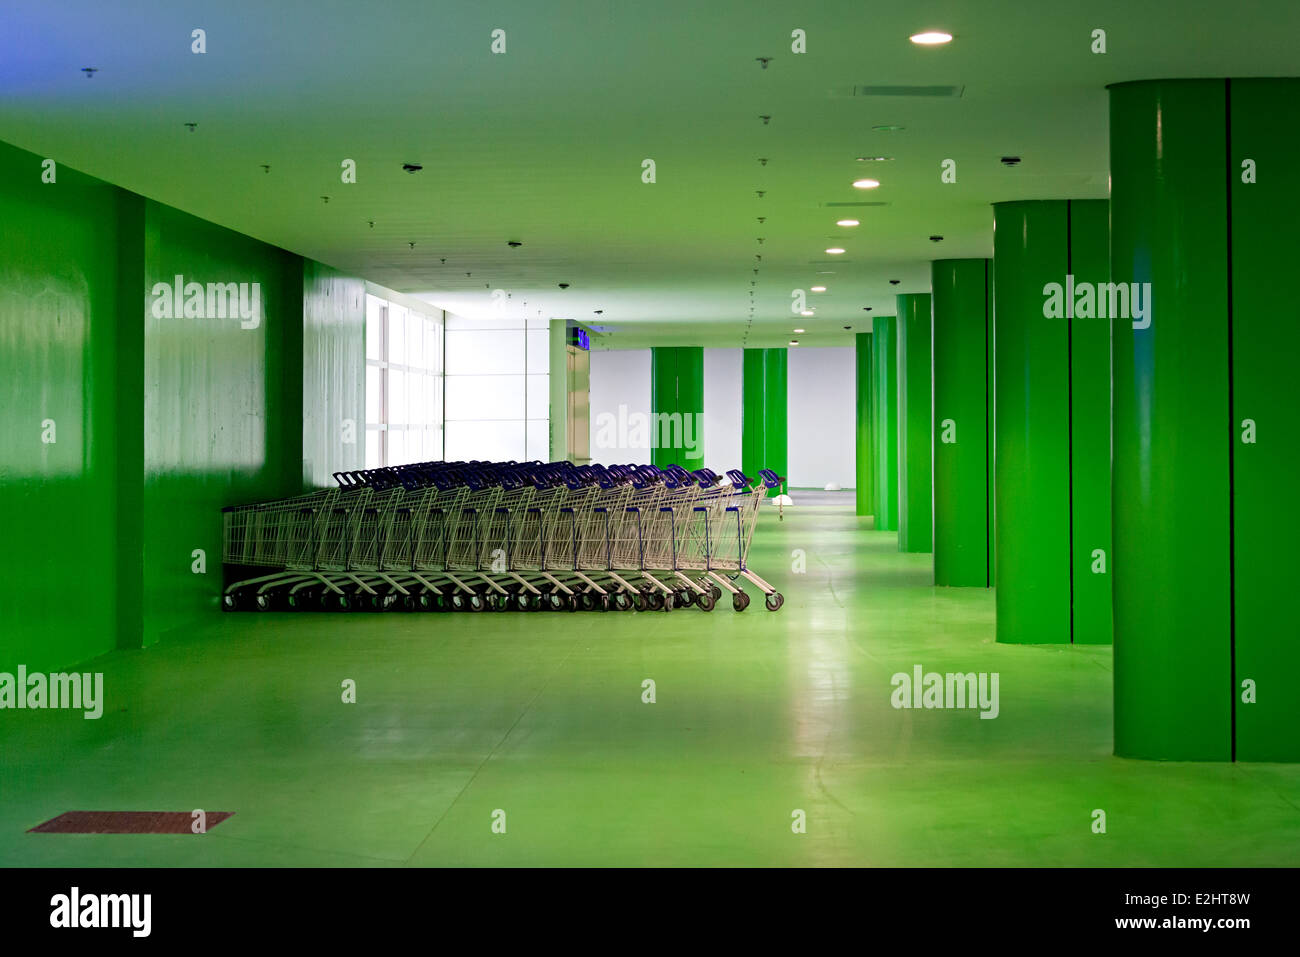 Garage Loire Atlantique Shopping Carts In Colorful Parking Garage Saint Herblain Stock